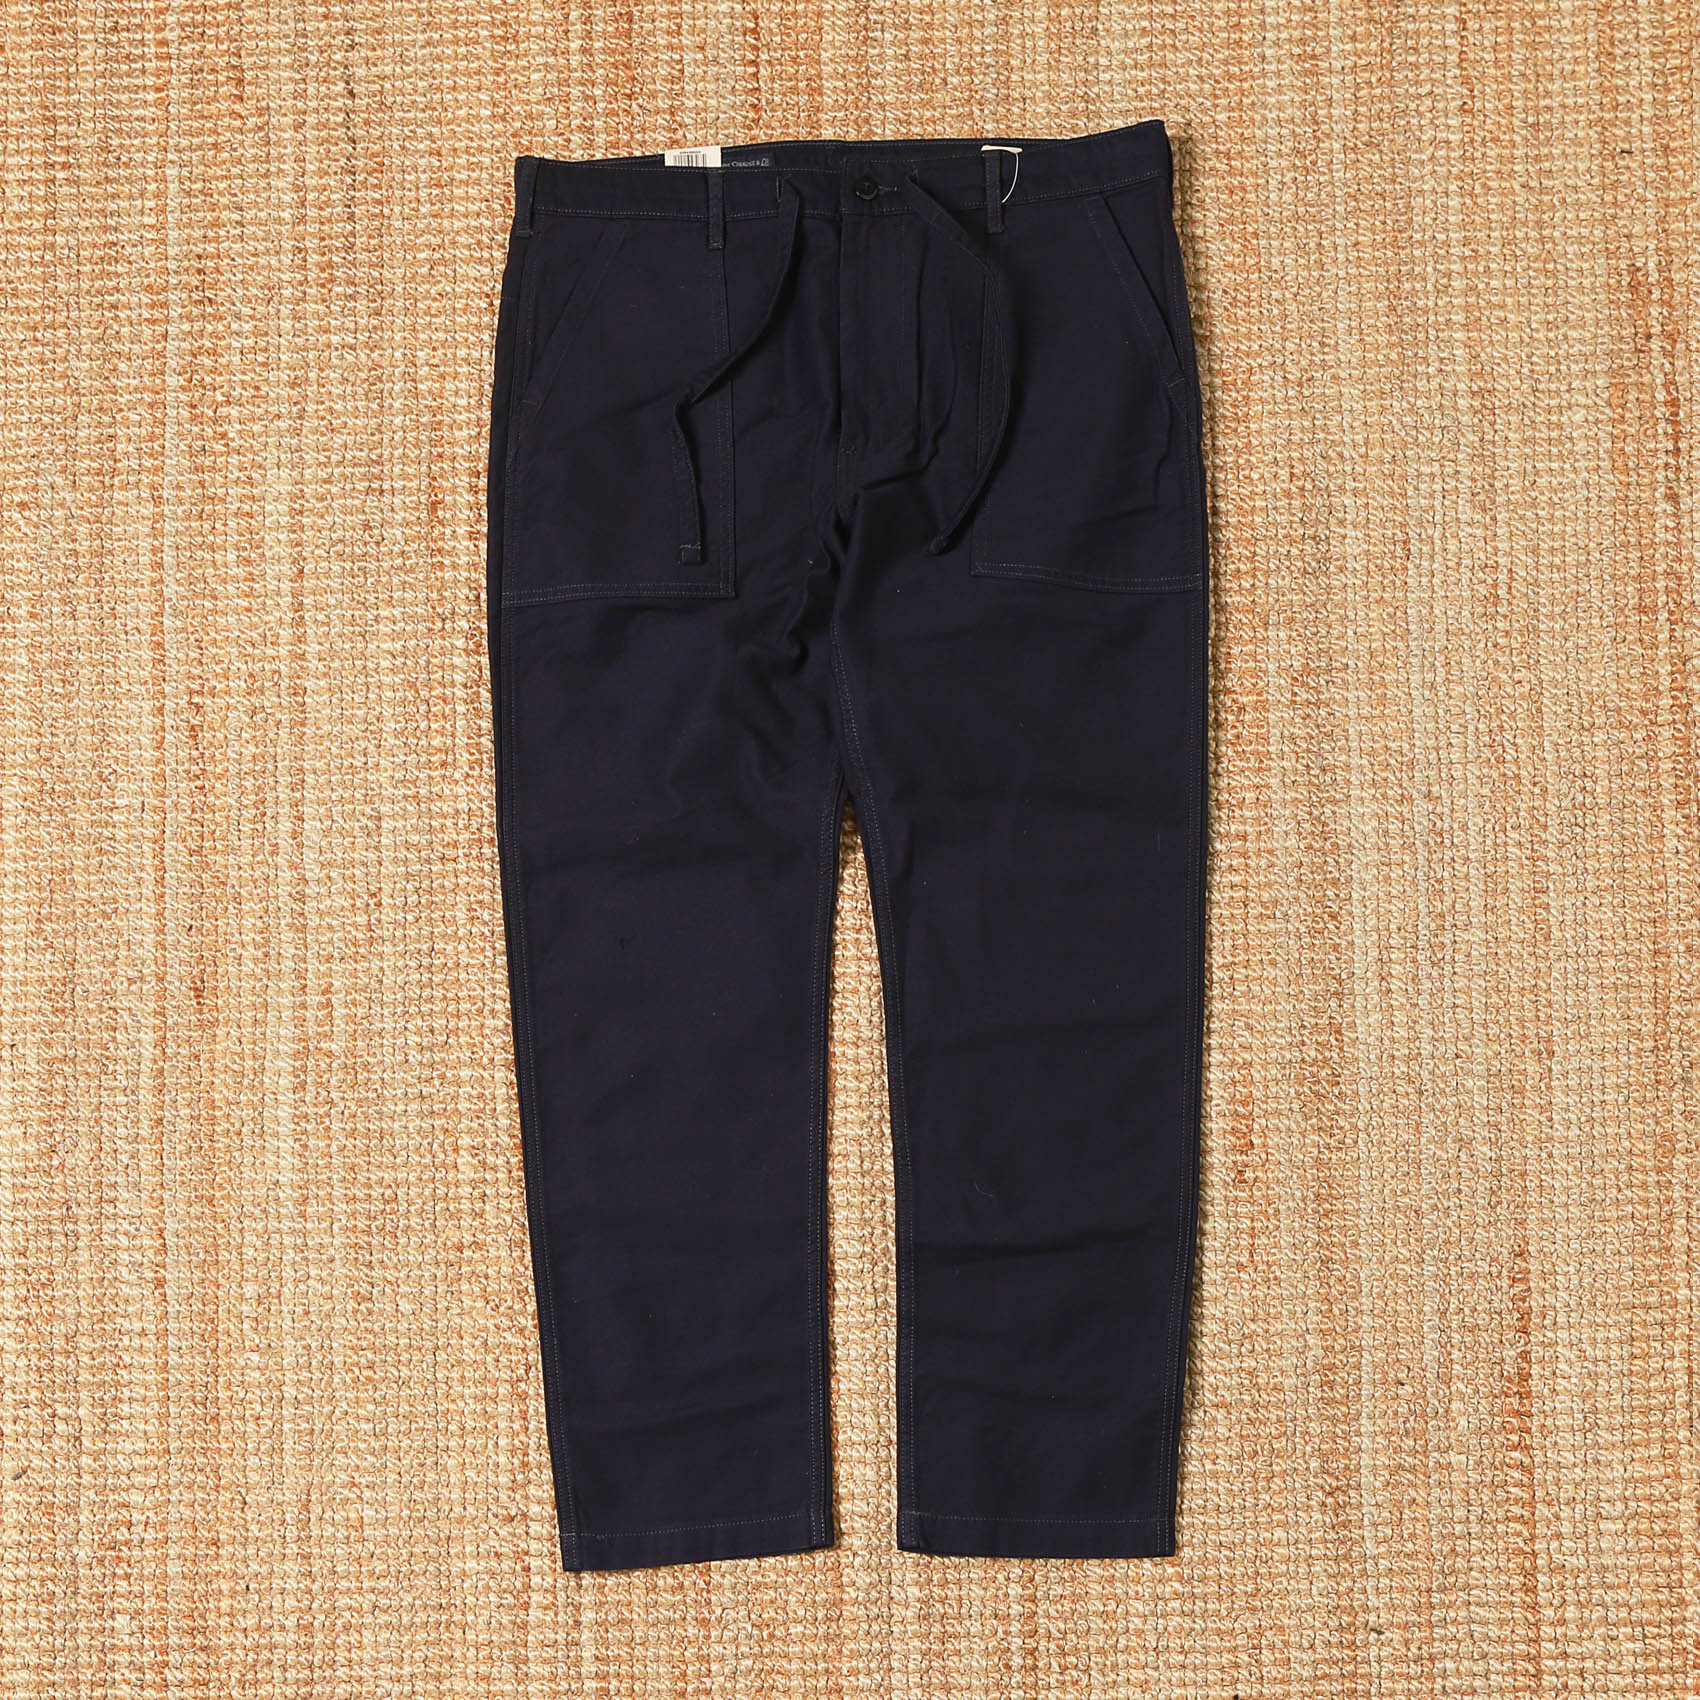 LEVIS FATIGUE PANTS - NAVY